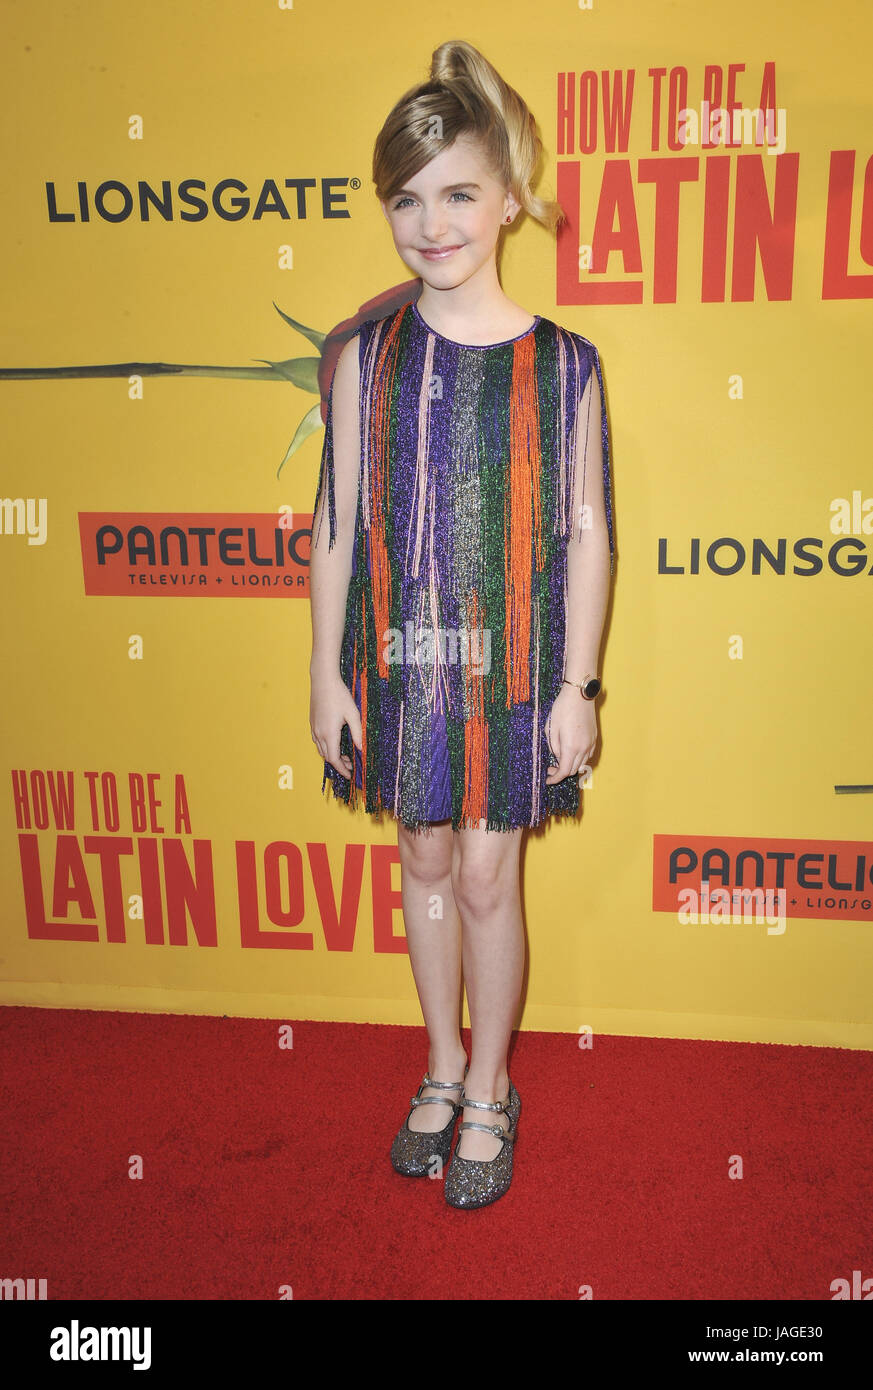 Premiere Of 'how To Be A Latin Lover' Arrivals Featuring: Mckenna Grace  Where Howtobealatinlover Picture Number 15